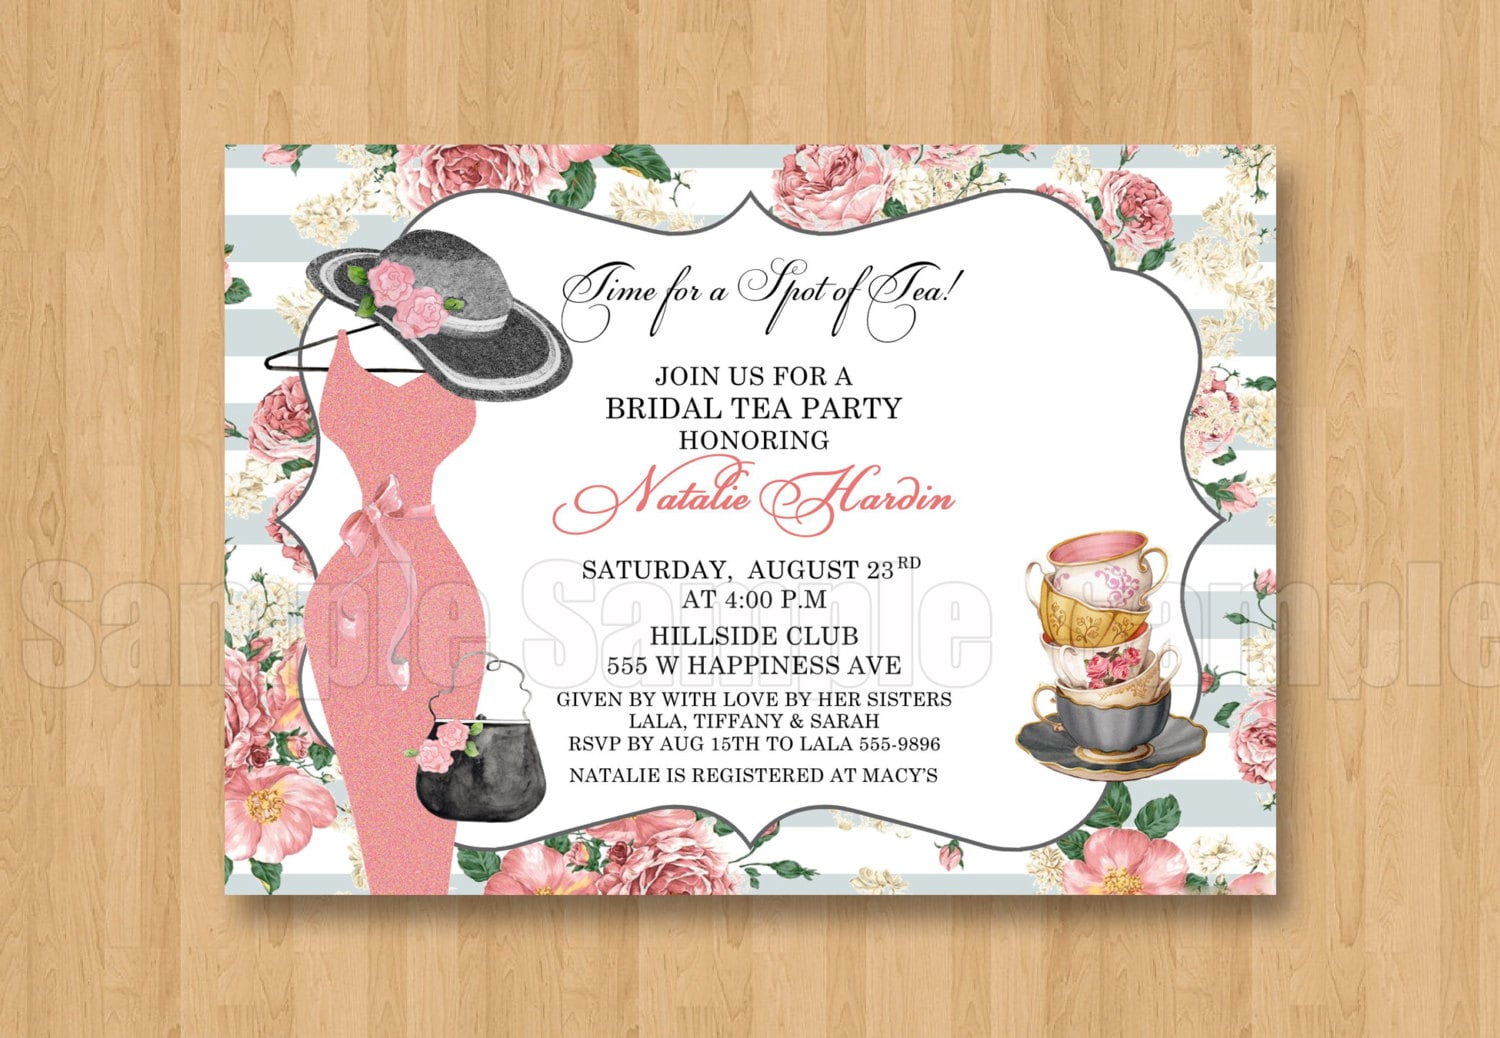 Spot of tea fancy hat dress birthday bridal shower spot of tea fancy hat dress birthday bridal shower personalized invitation digital file gray pink stopboris Image collections